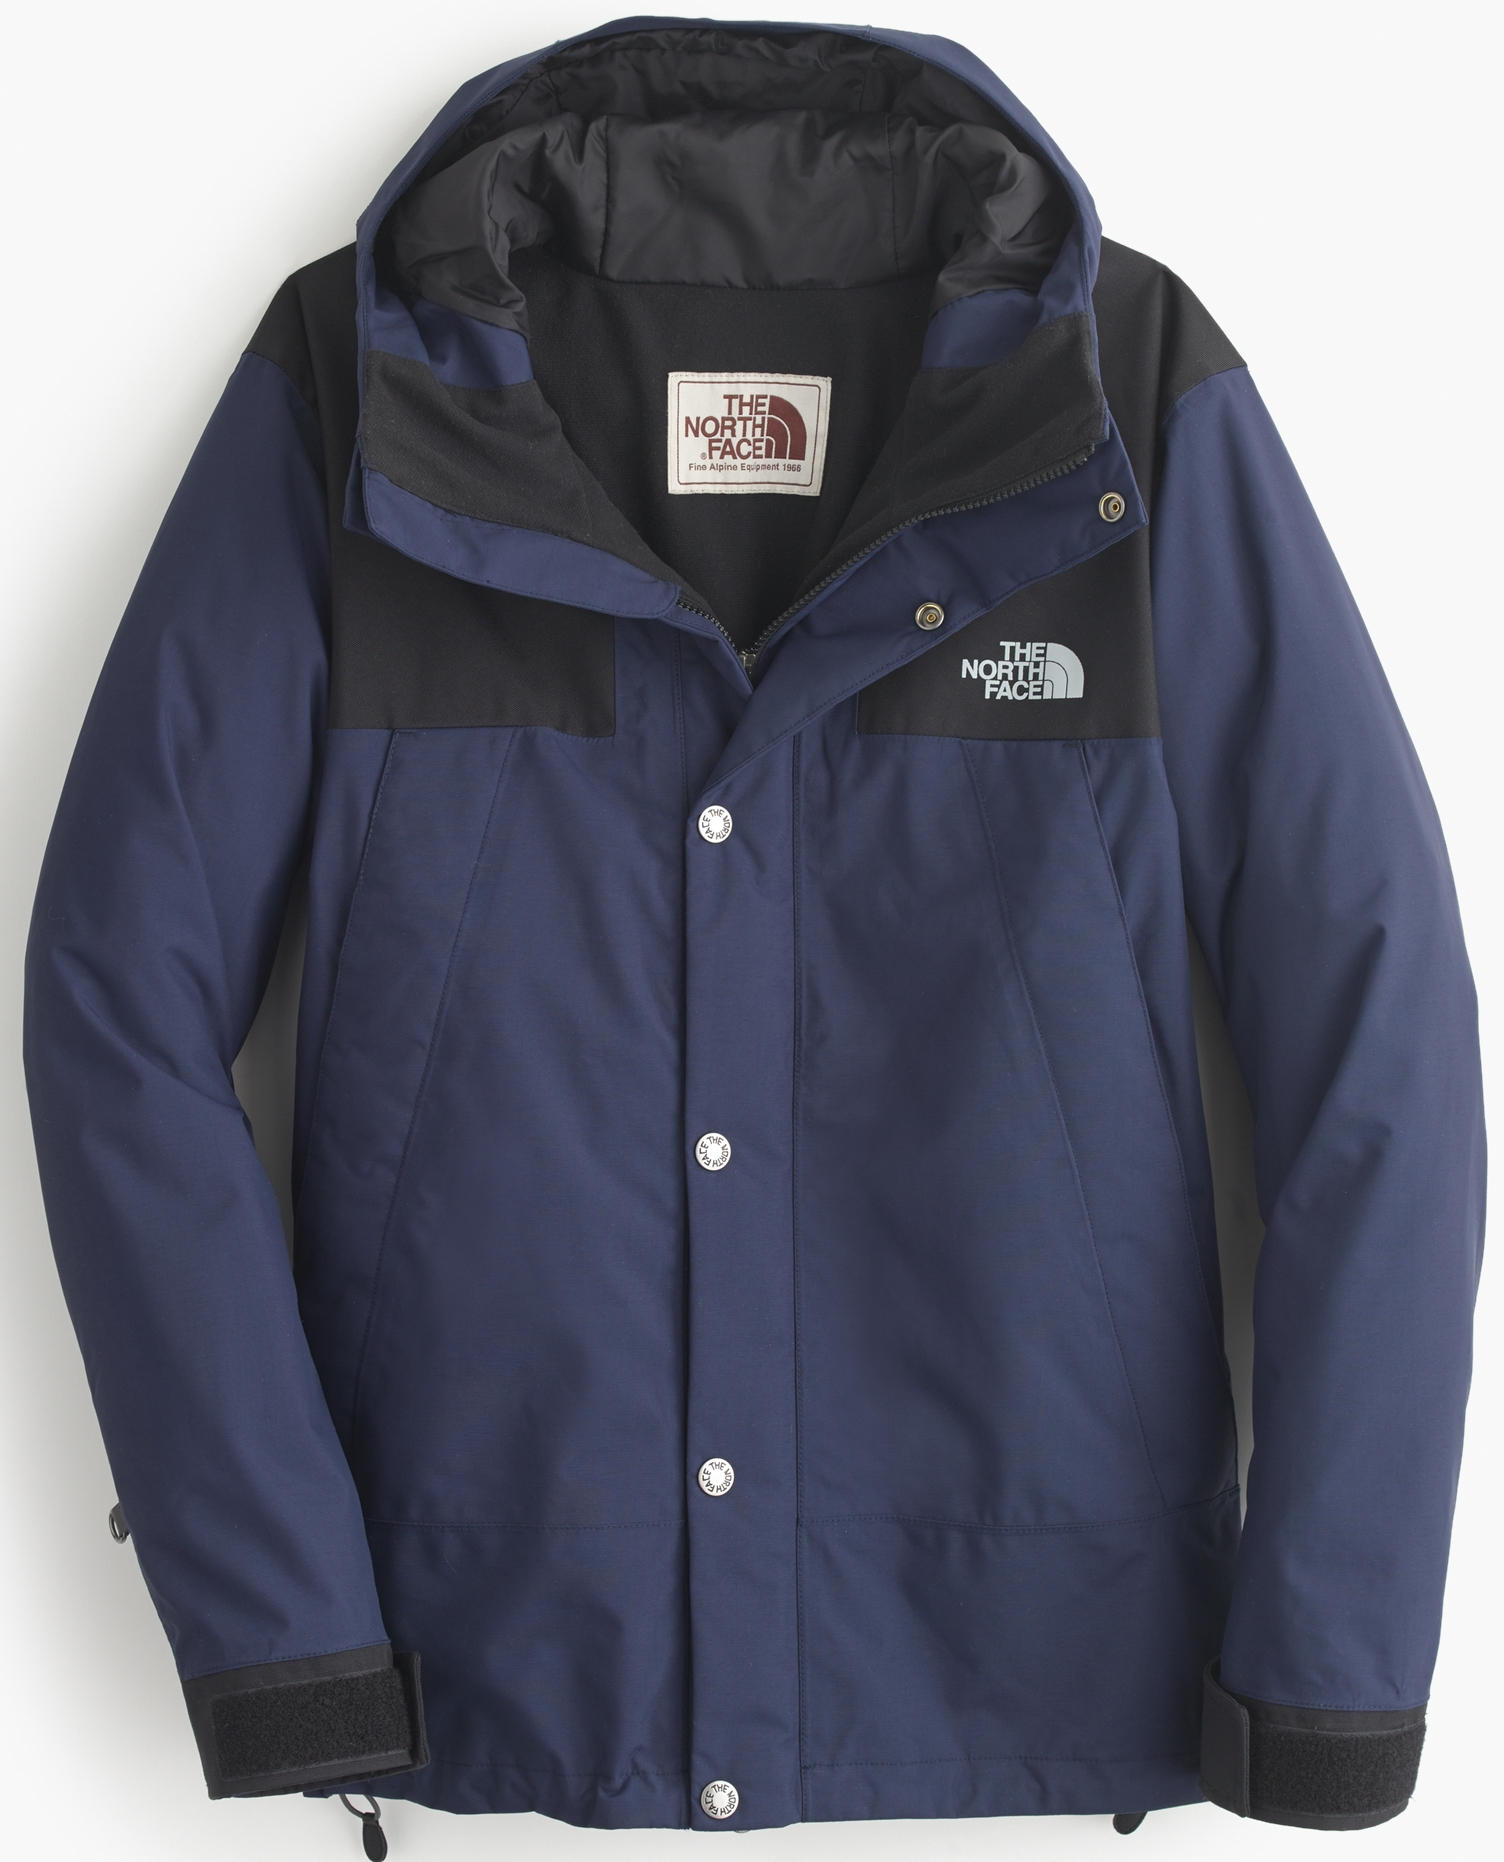 J.Crew x The North Face® Mountain Jacket, $250